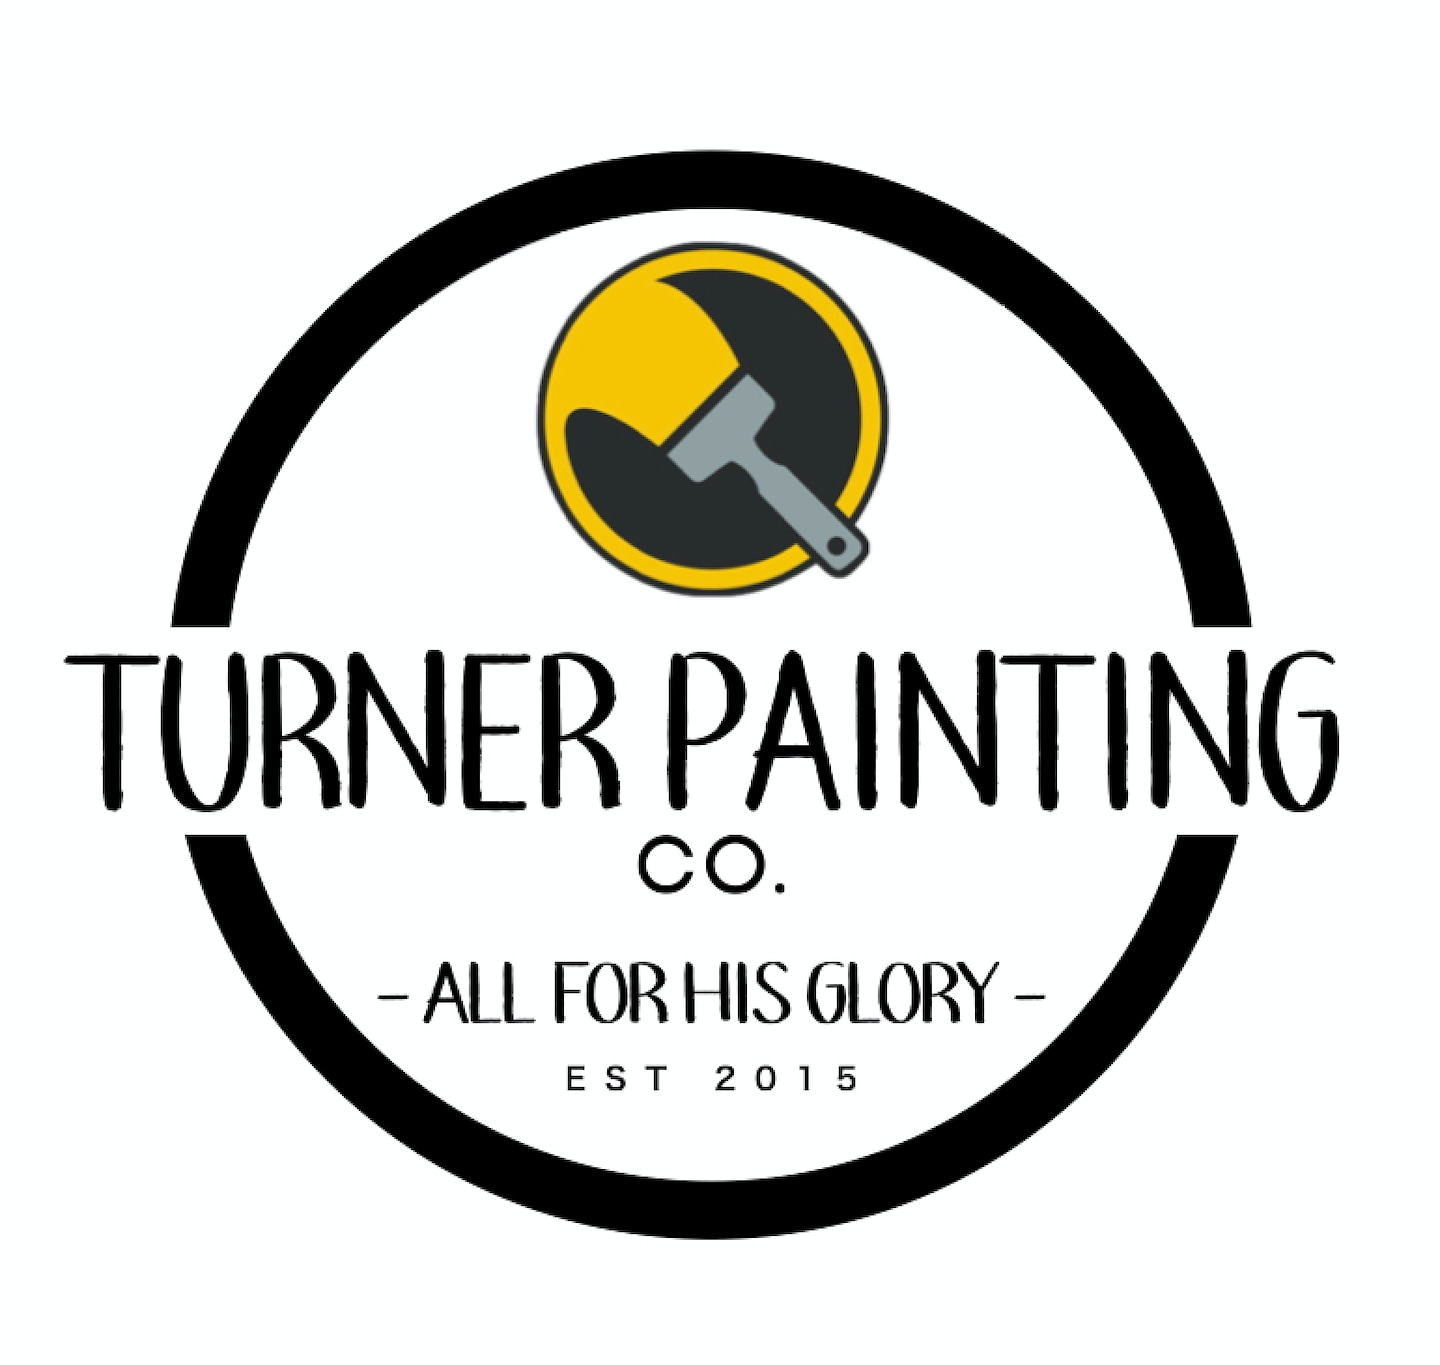 Turner Painting Company